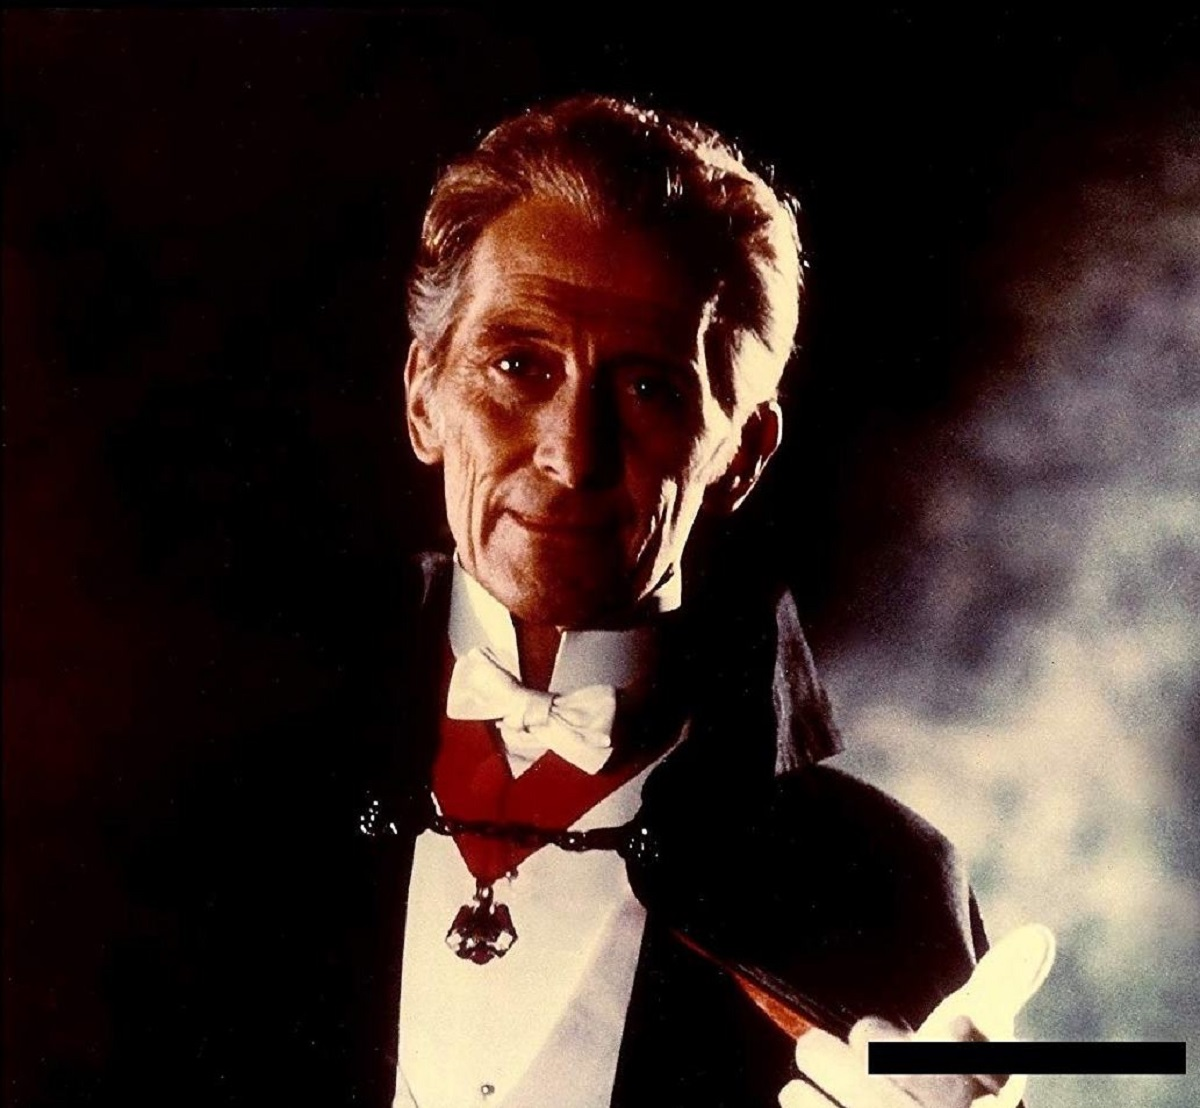 Peter Cushing as a vampire (or at least playing the horror actor MacGregor) in Tender Dracula (1974)